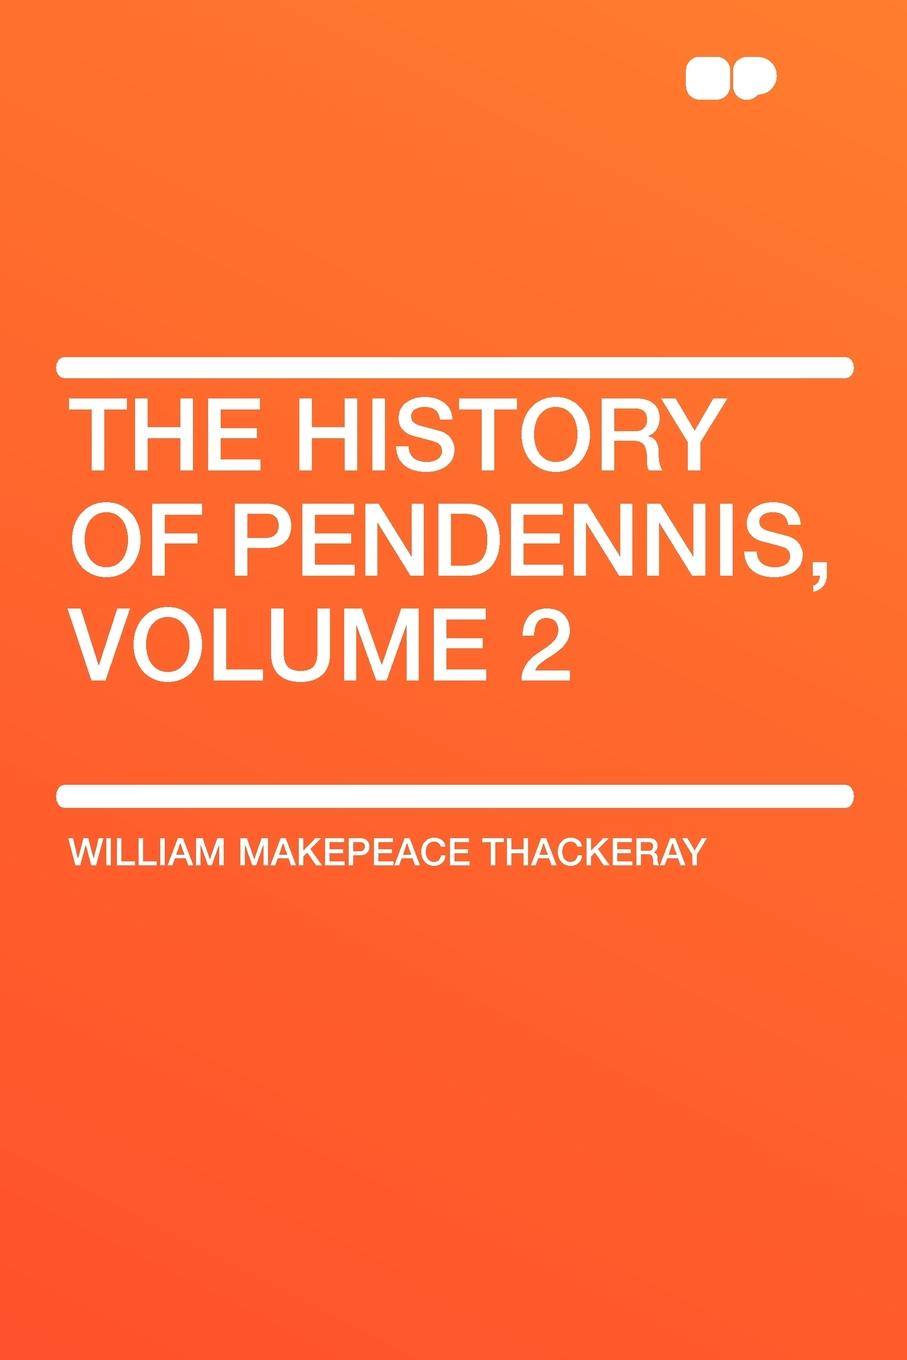 William Makepeace Thackeray The History of Pendennis, Volume 2 thackeray william makepeace the history of pendennis 2